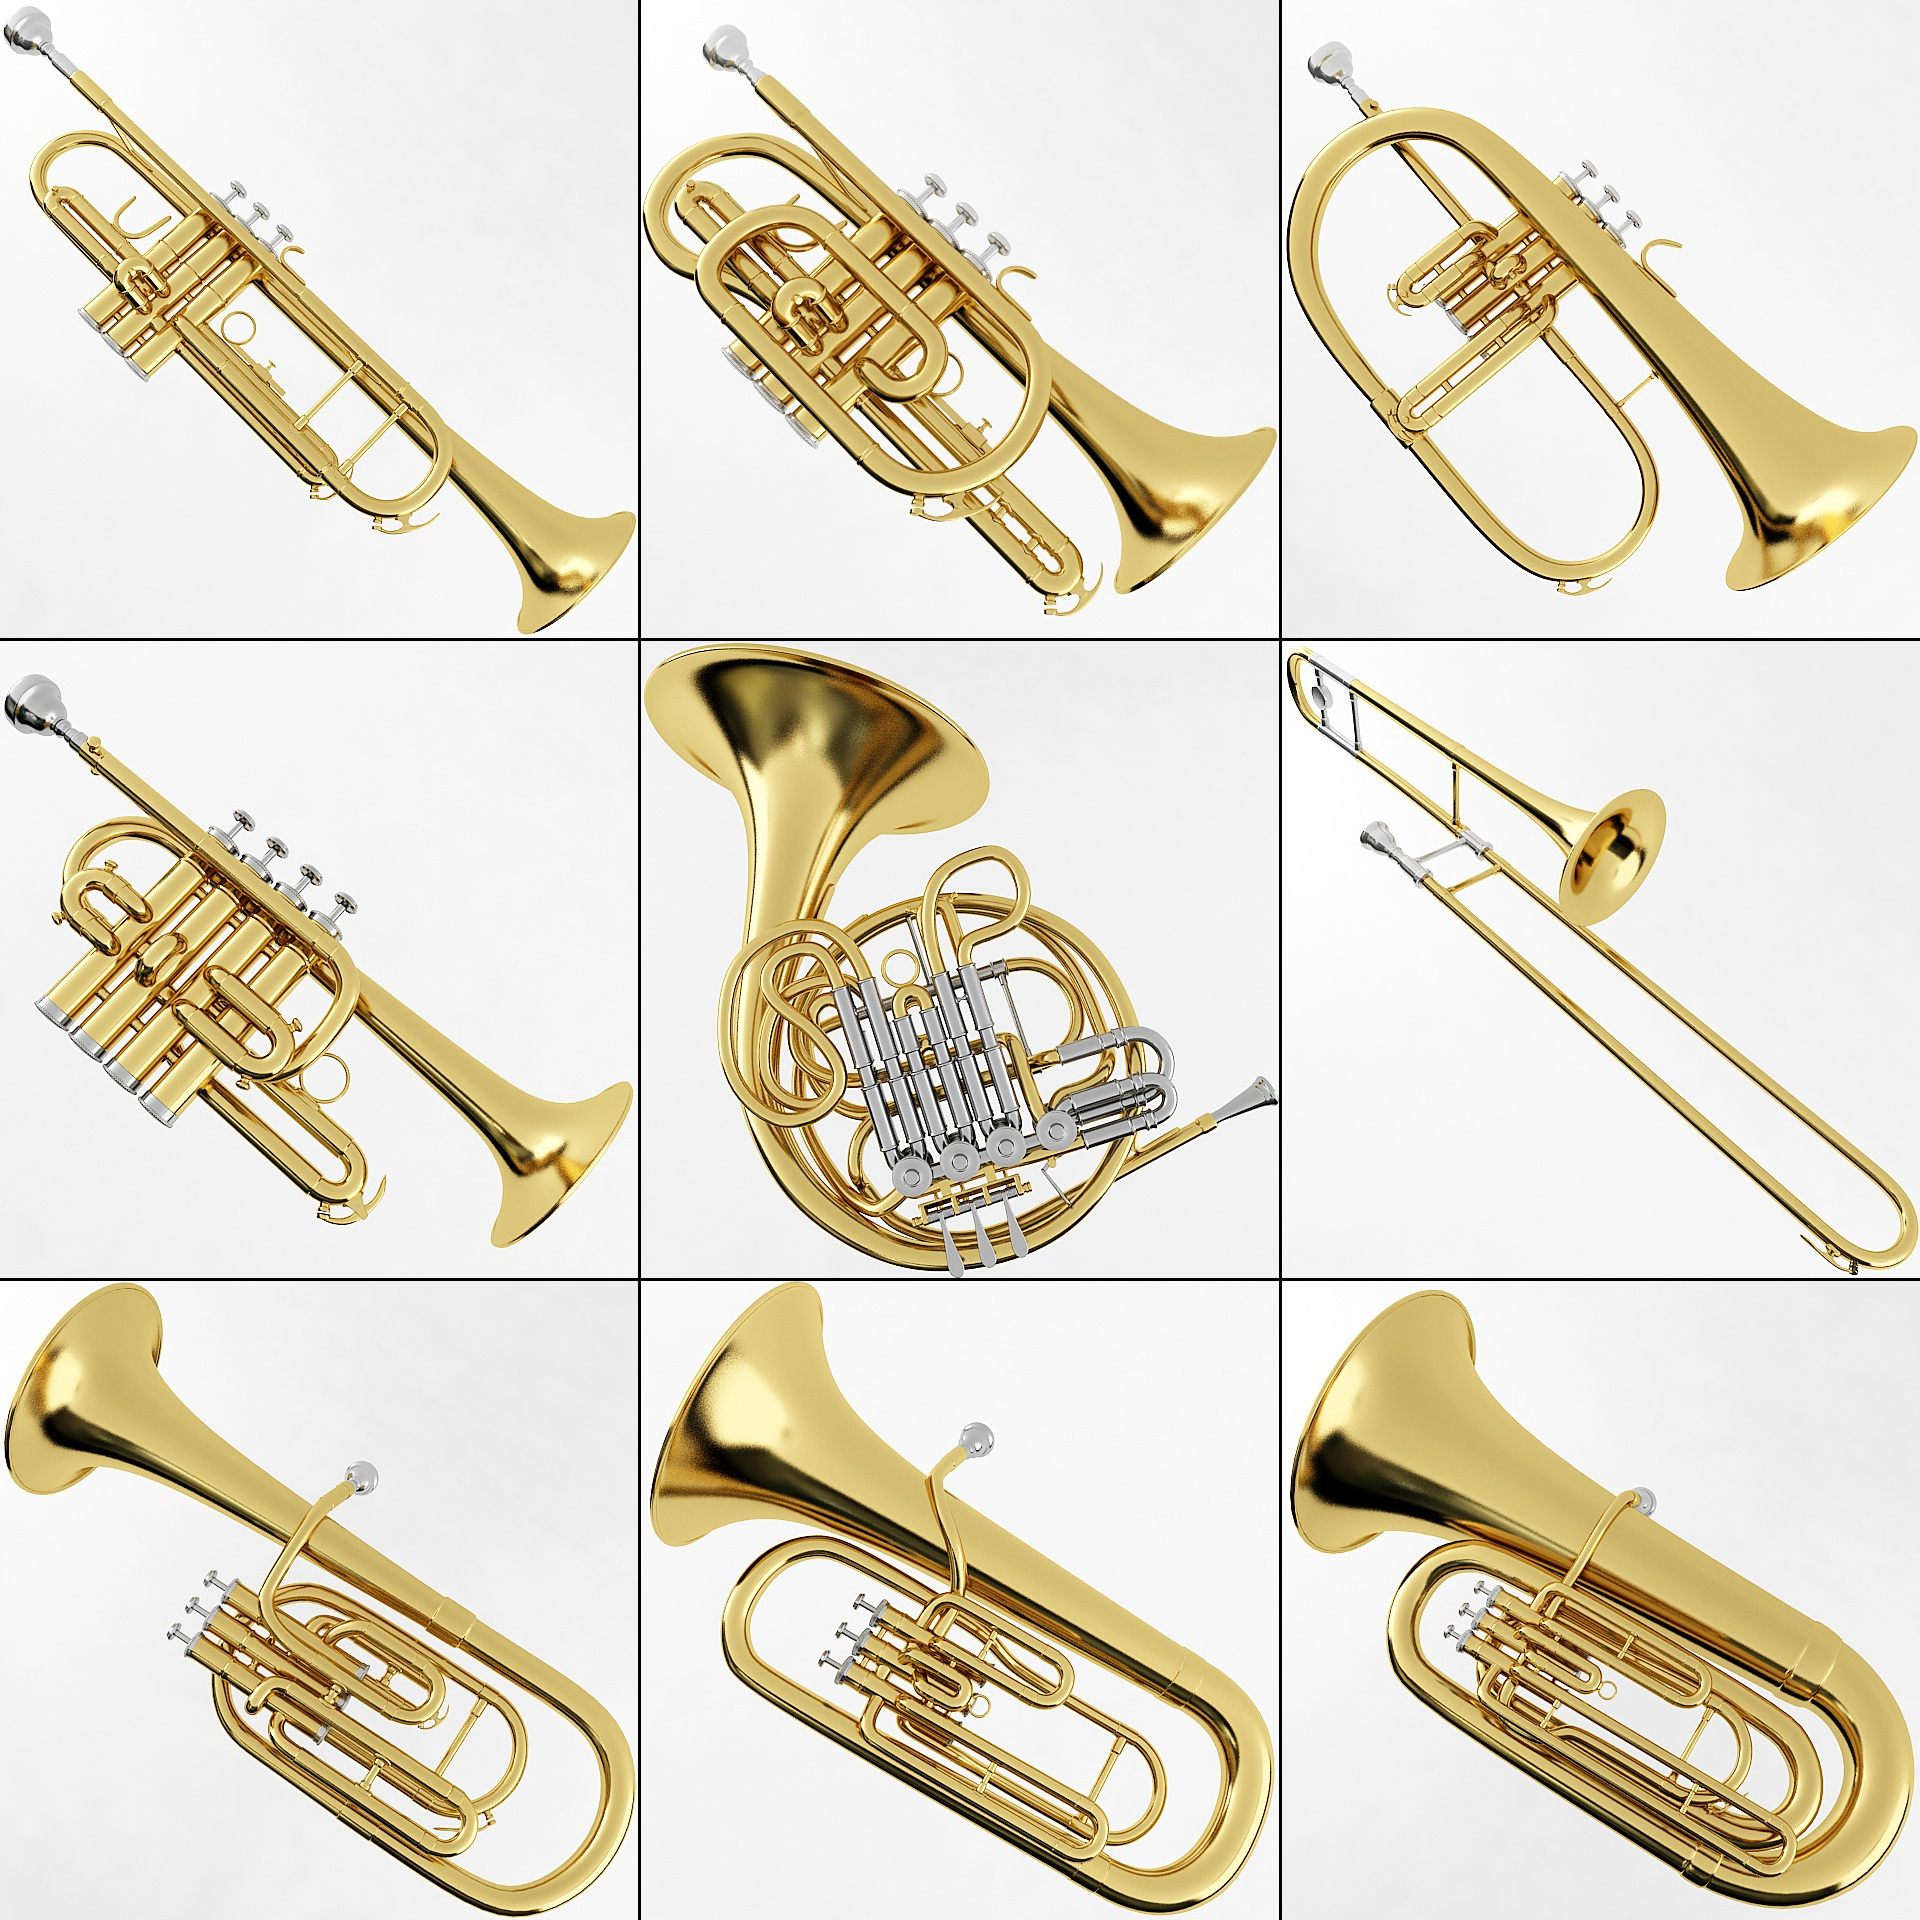 Brass Musical Instrument Collection Brass Musical ...